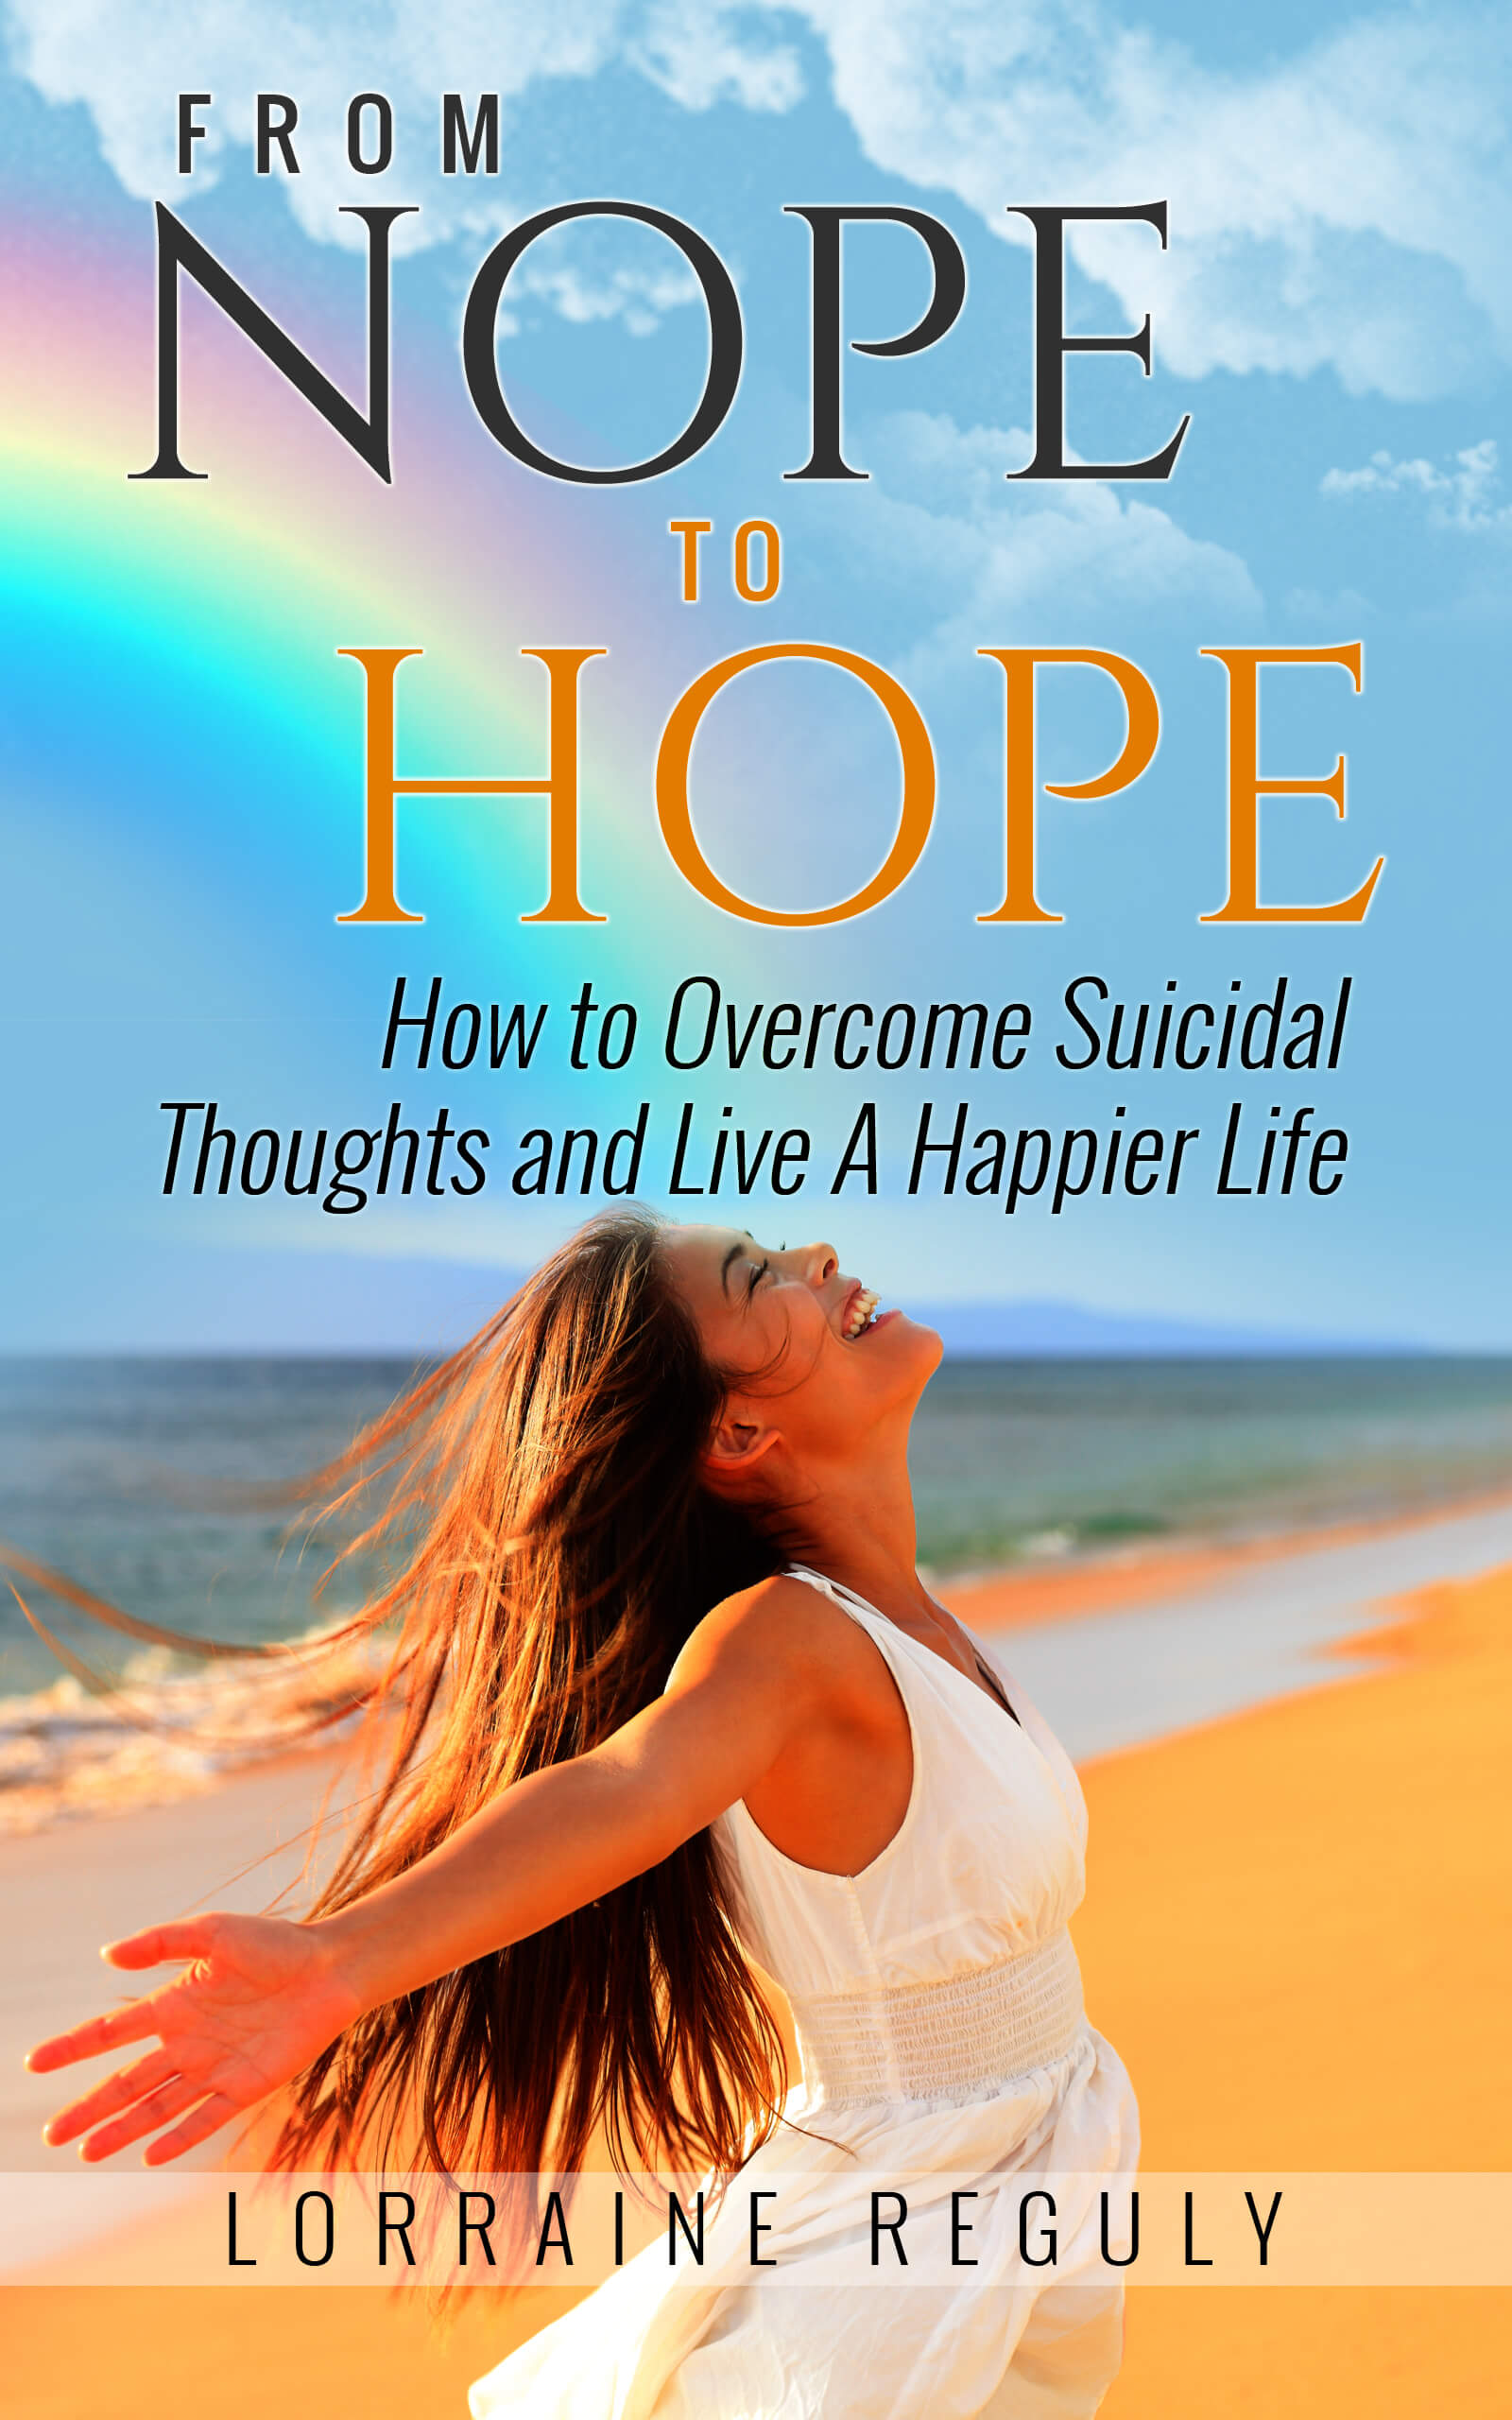 From NOPE to HOPE - final e-book cover with girl